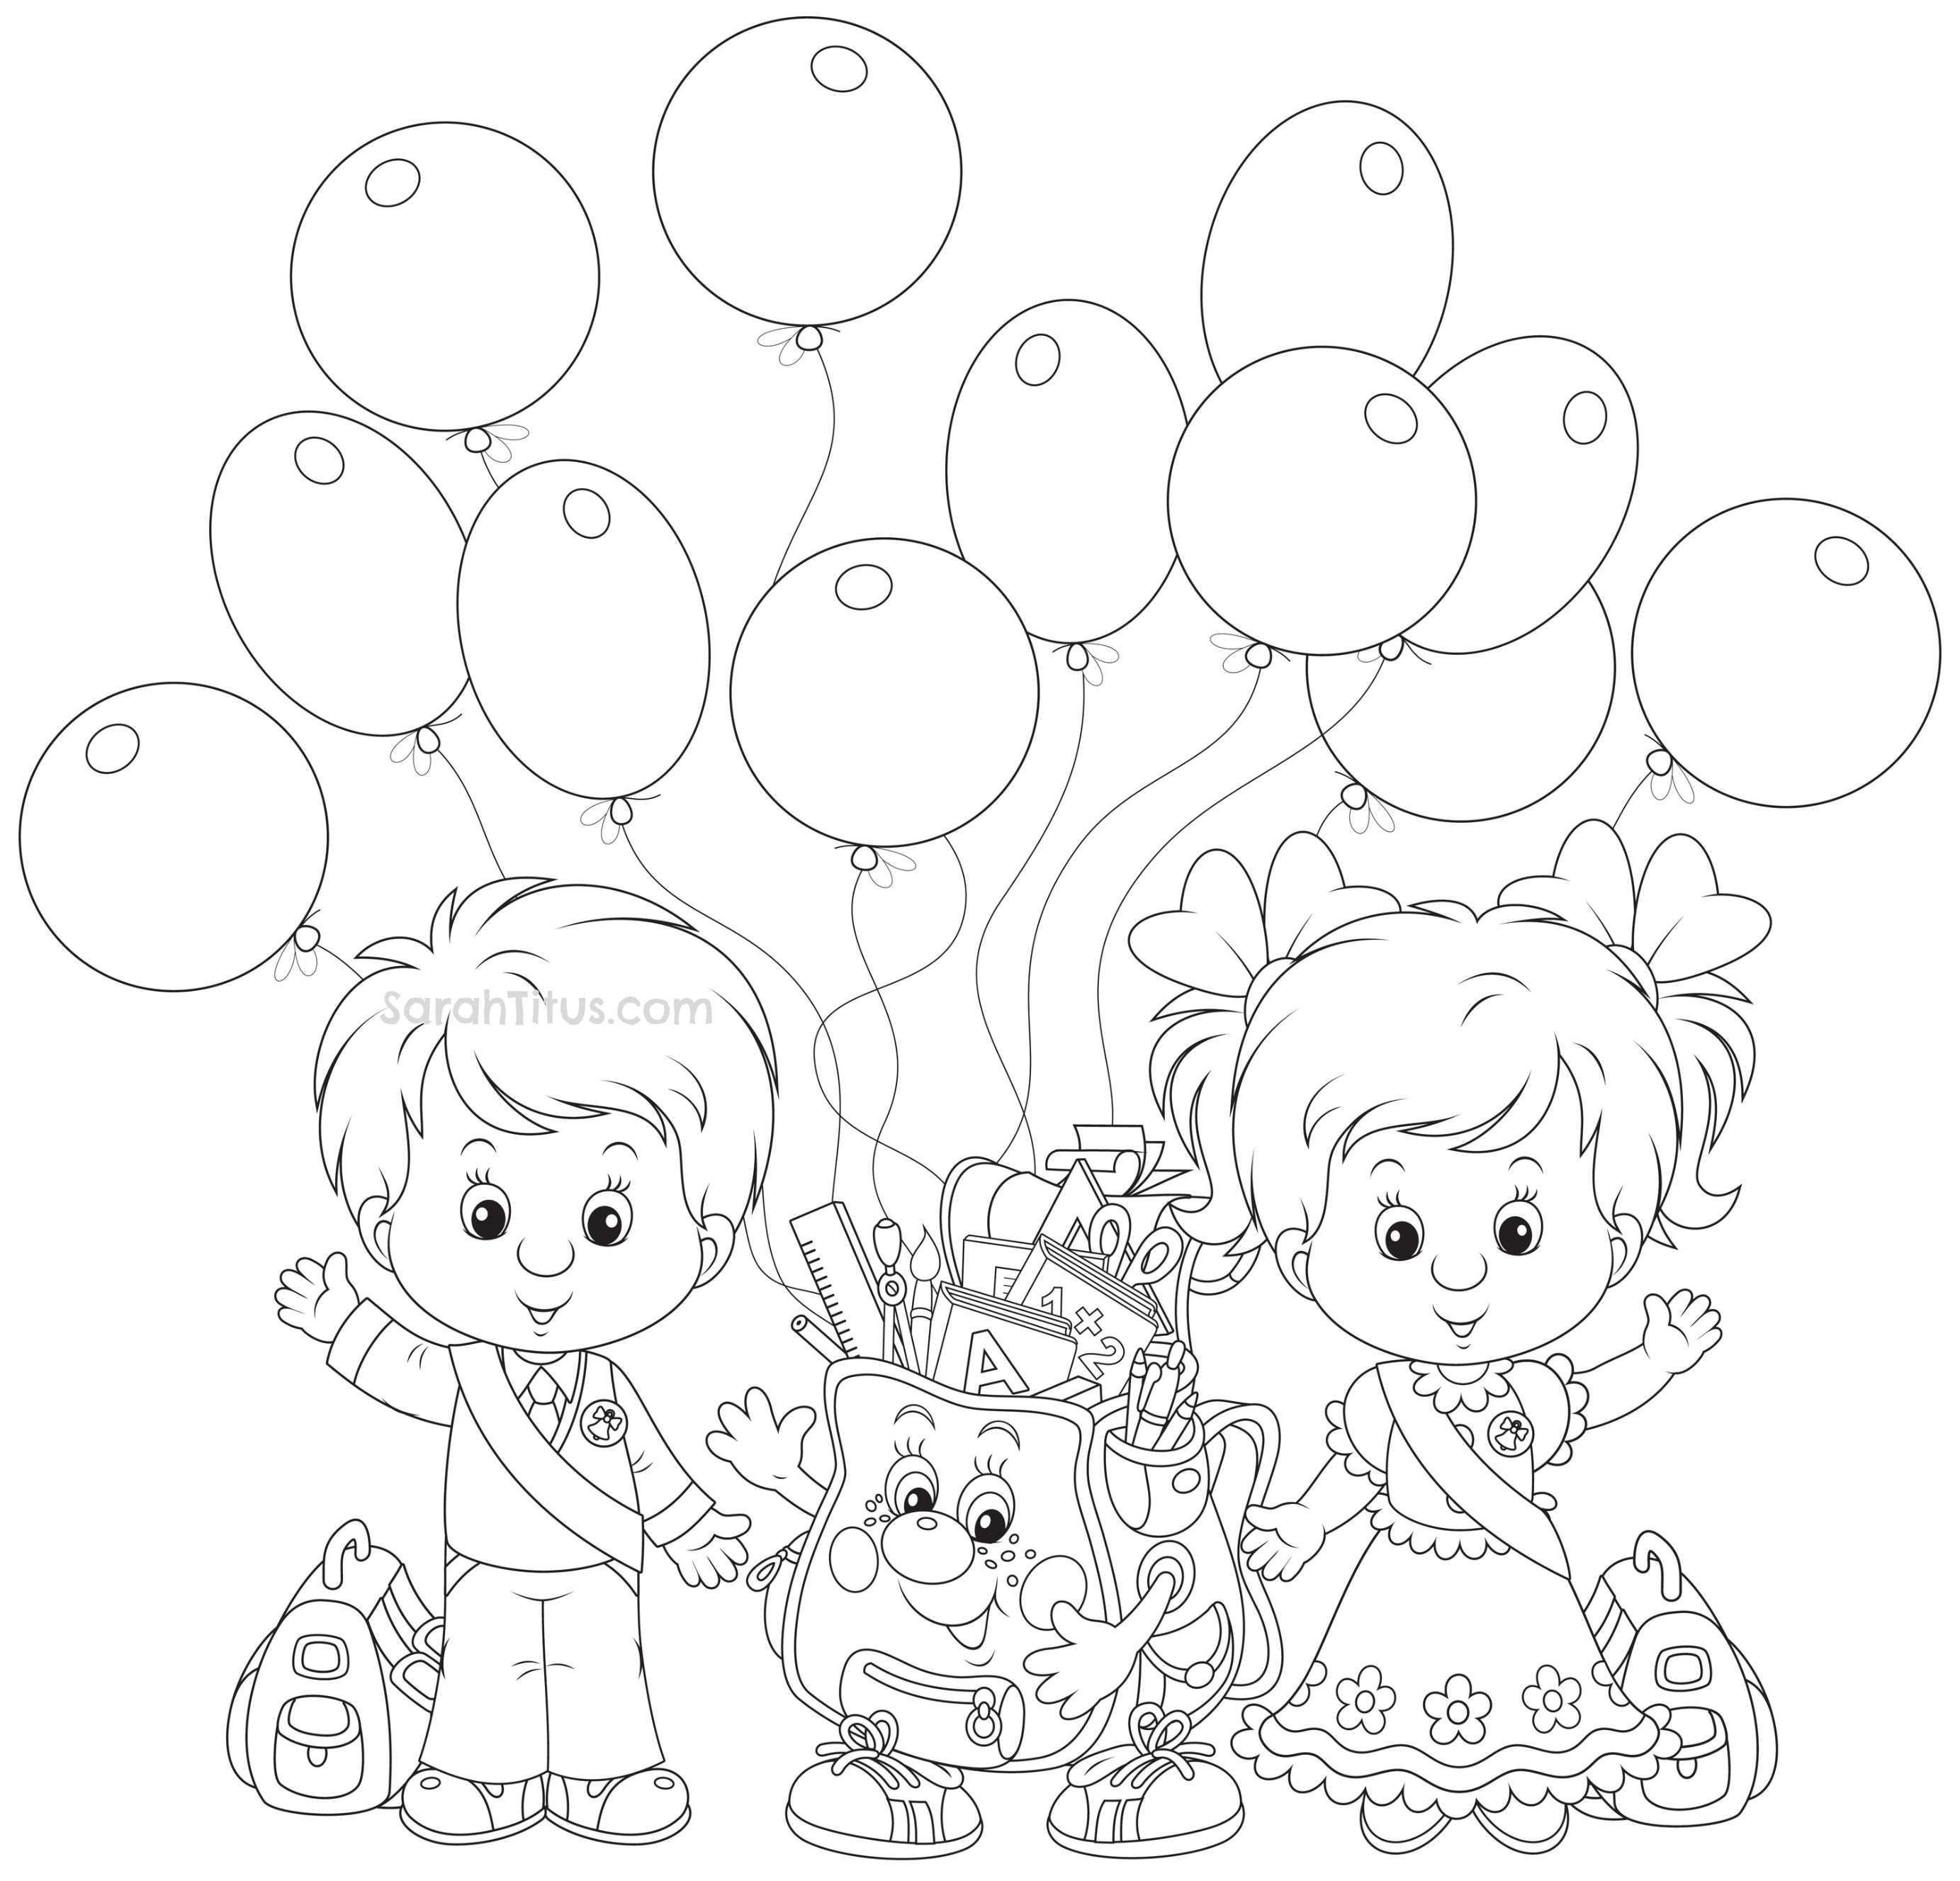 Back To School Coloring Pages Kindergarten Coloring Pages School Coloring Pages Spring Coloring Pages